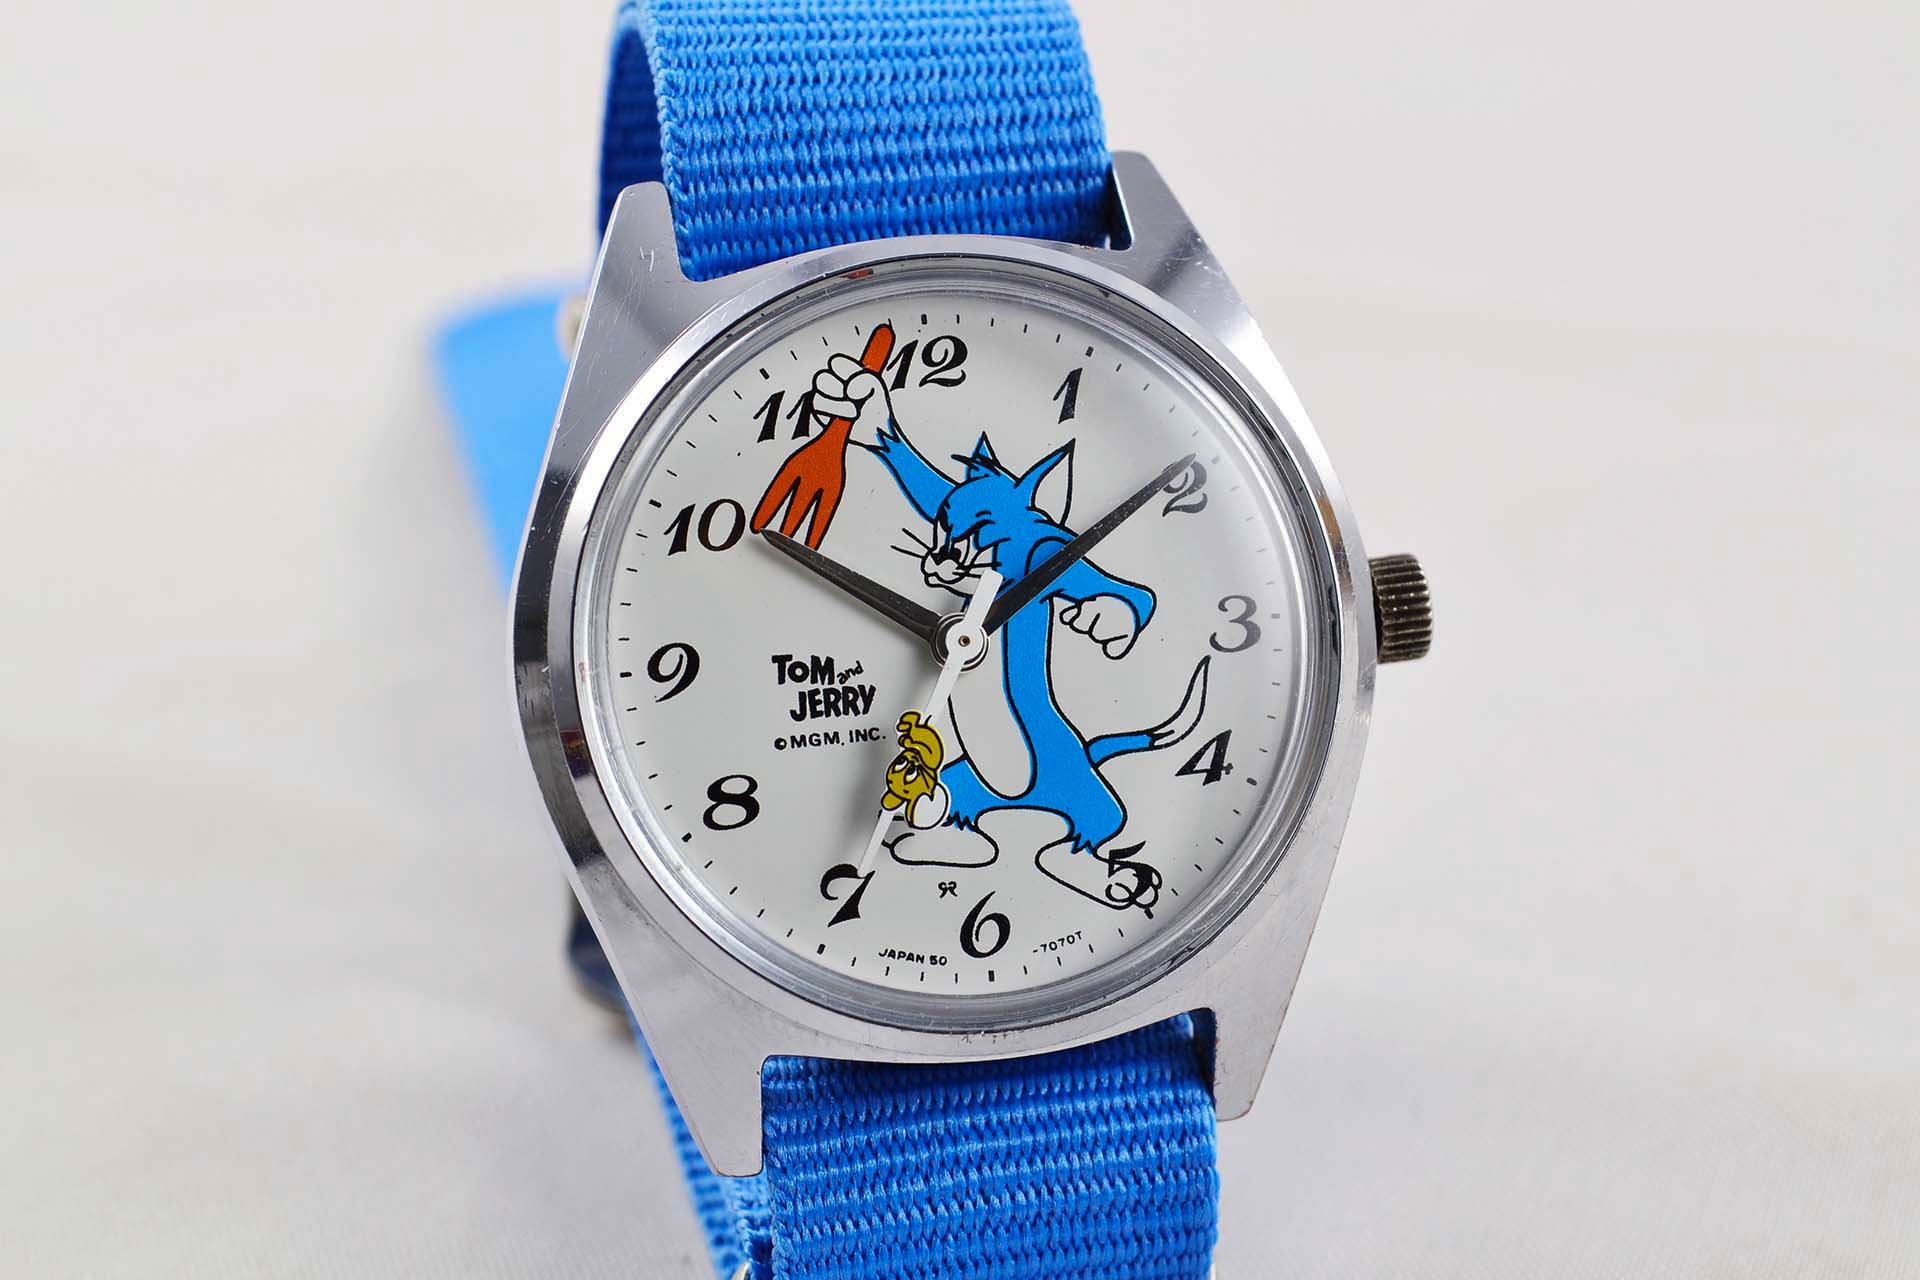 lumeville seiko tom jerry mgm cartoon vintage watch